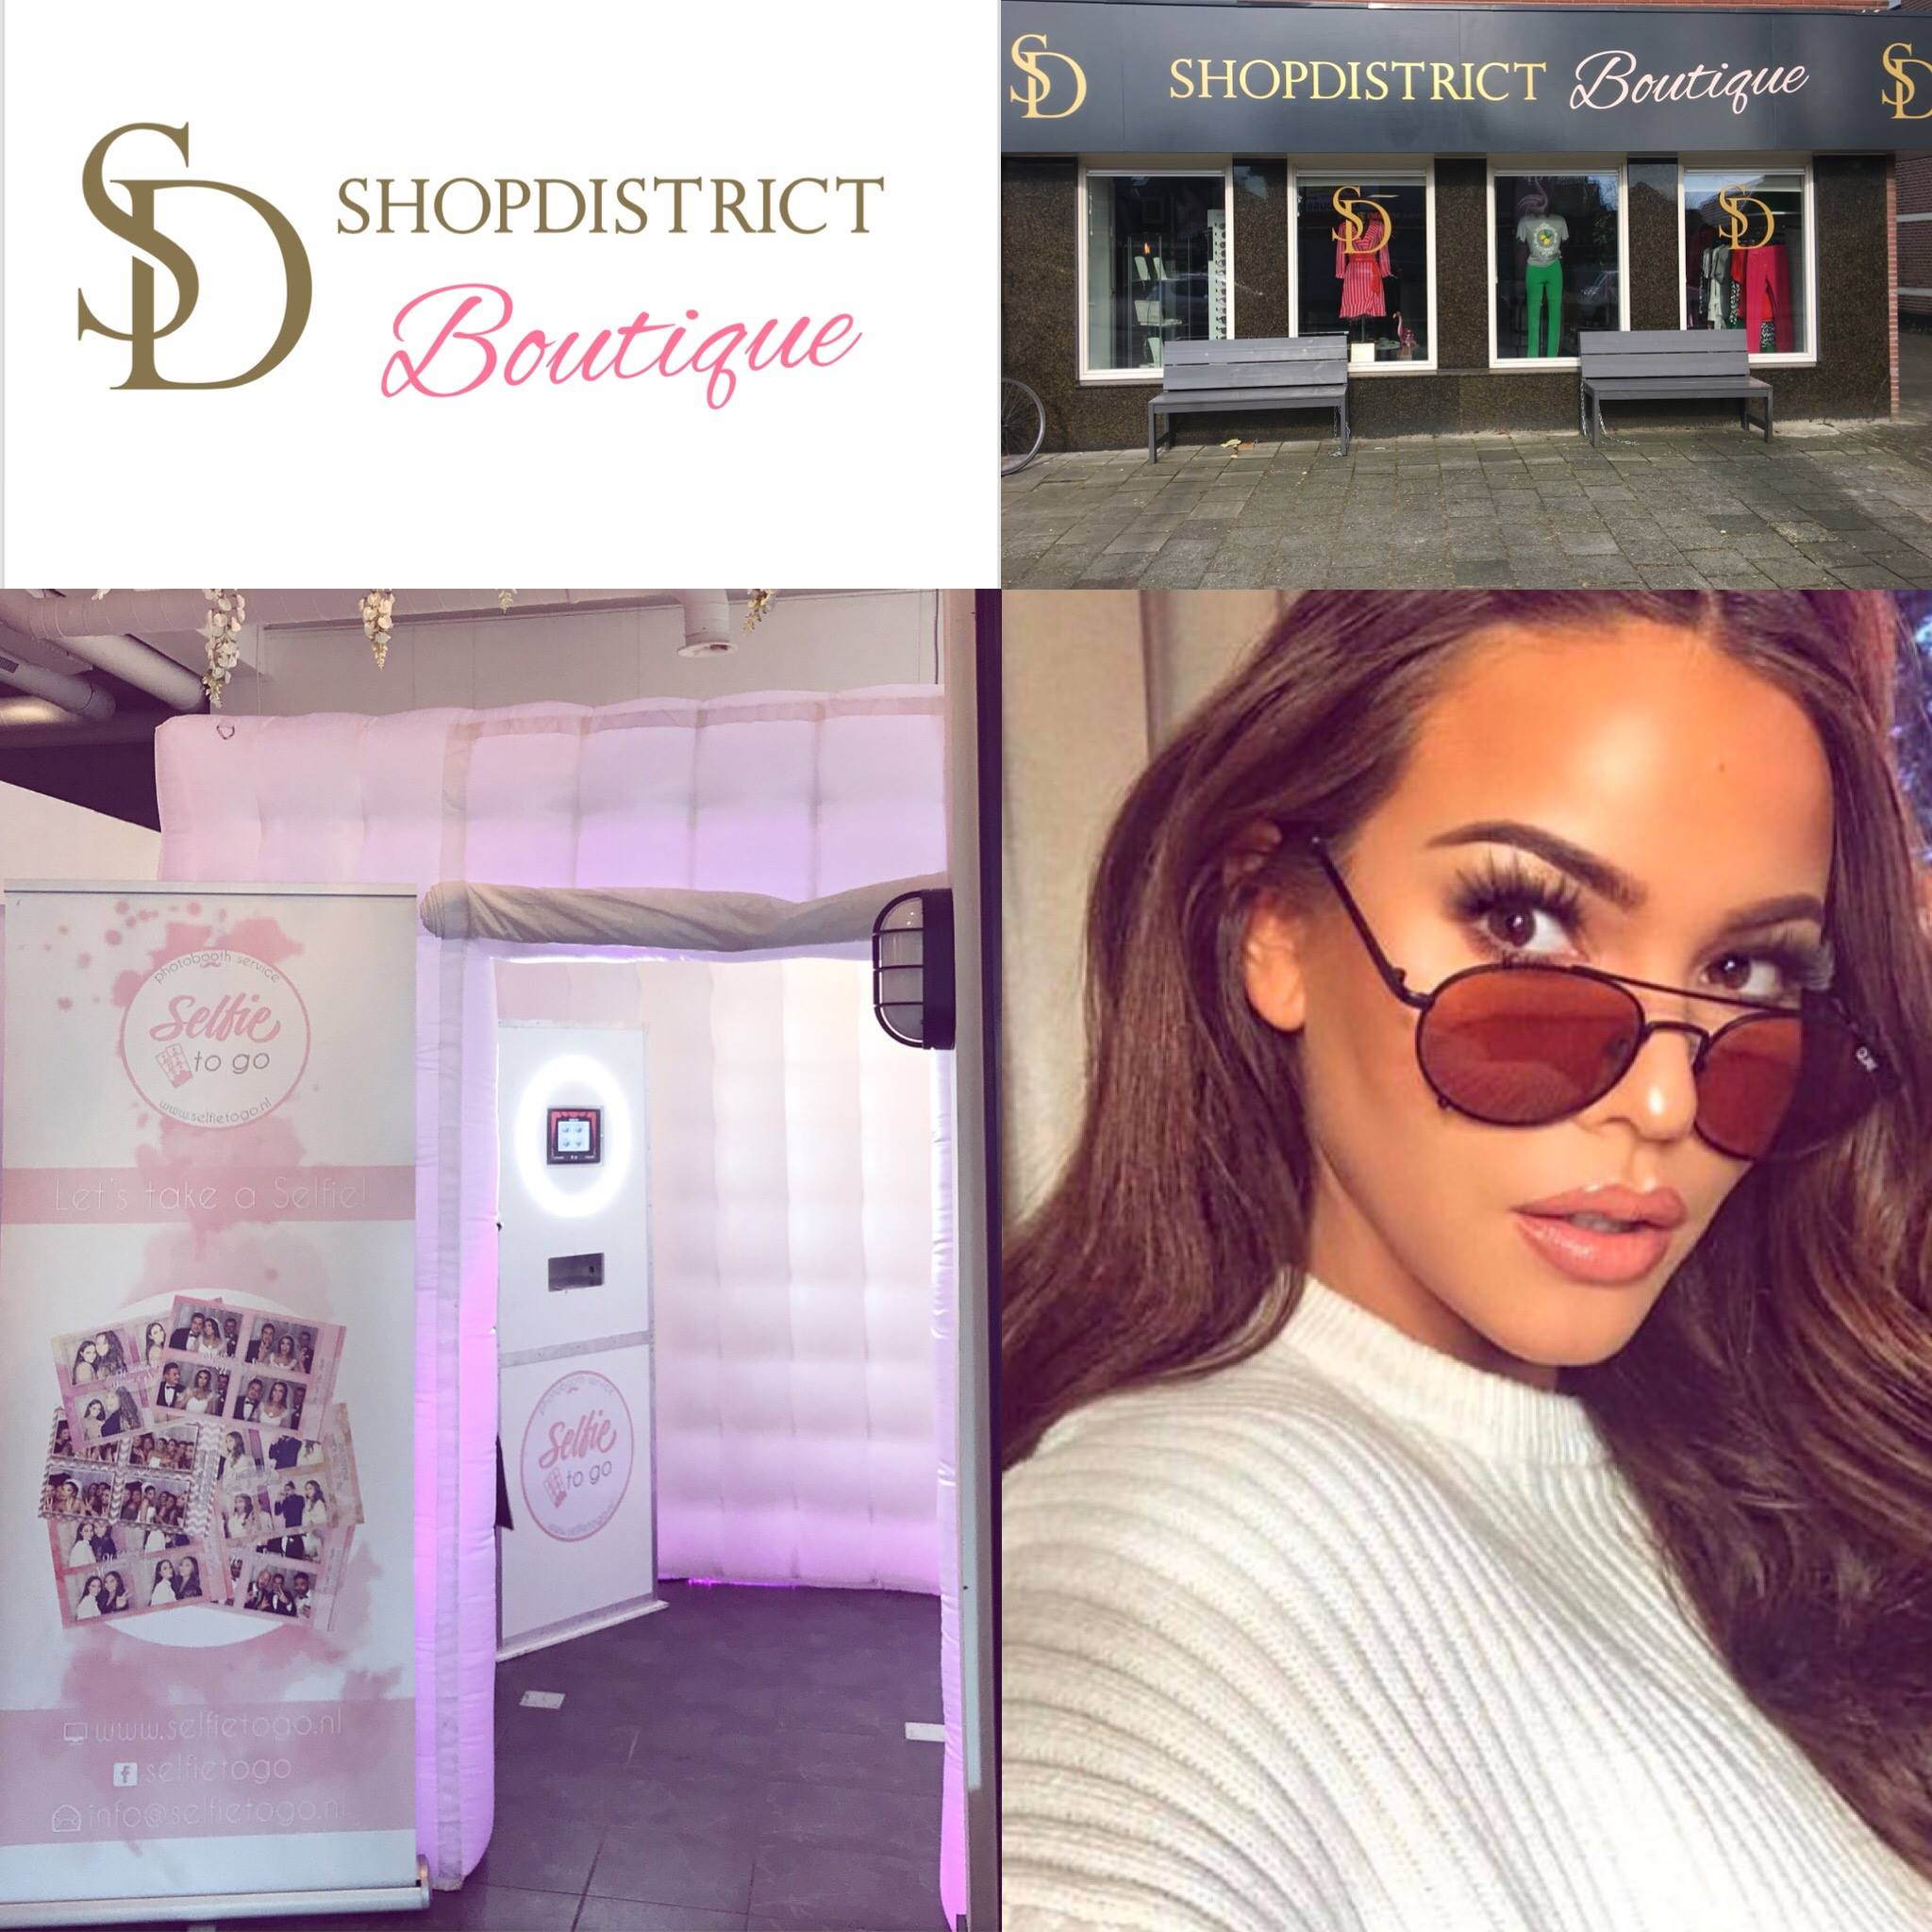 7c8a819771e Grand Opening Shopdistrict Boutique in Apeldoorn ! - Shopdistrict ...